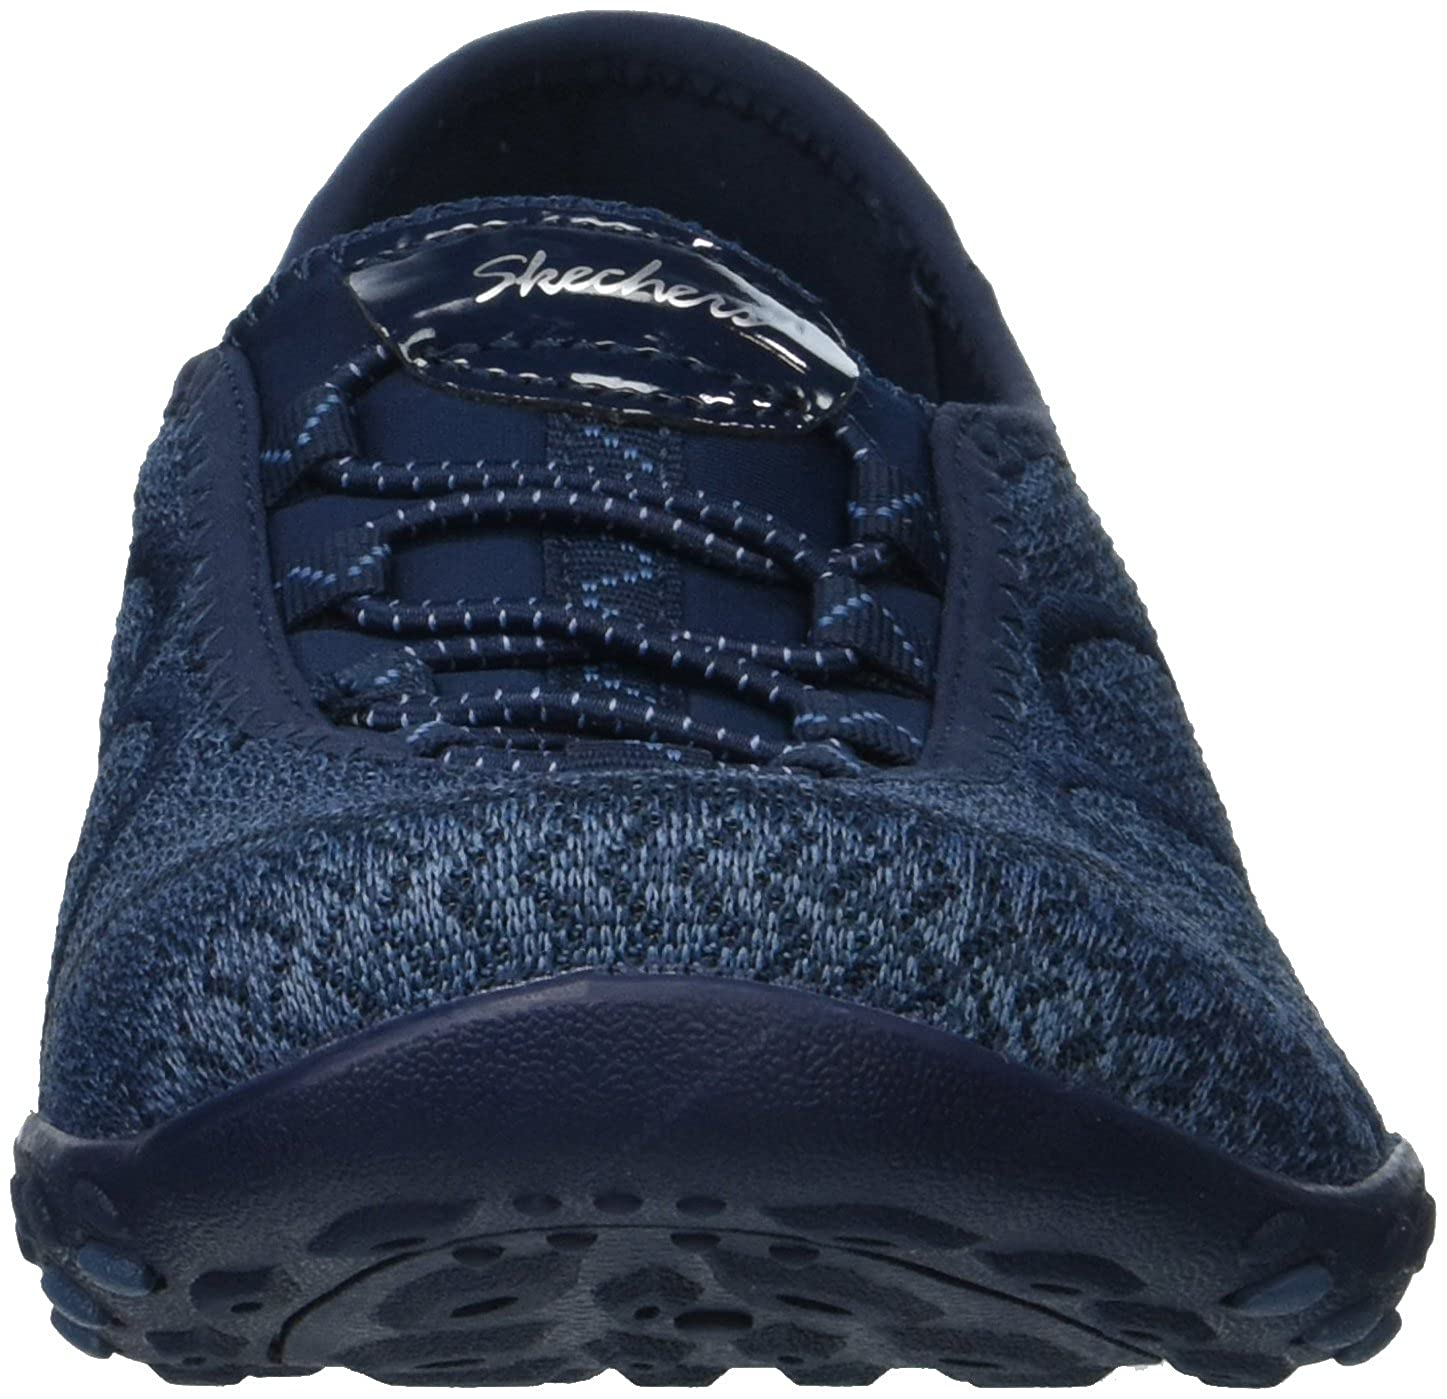 Skechers Sport Woherren Breathe Easy Sweet Jam Turnschuhe Navy 11 11 11 M US d69264